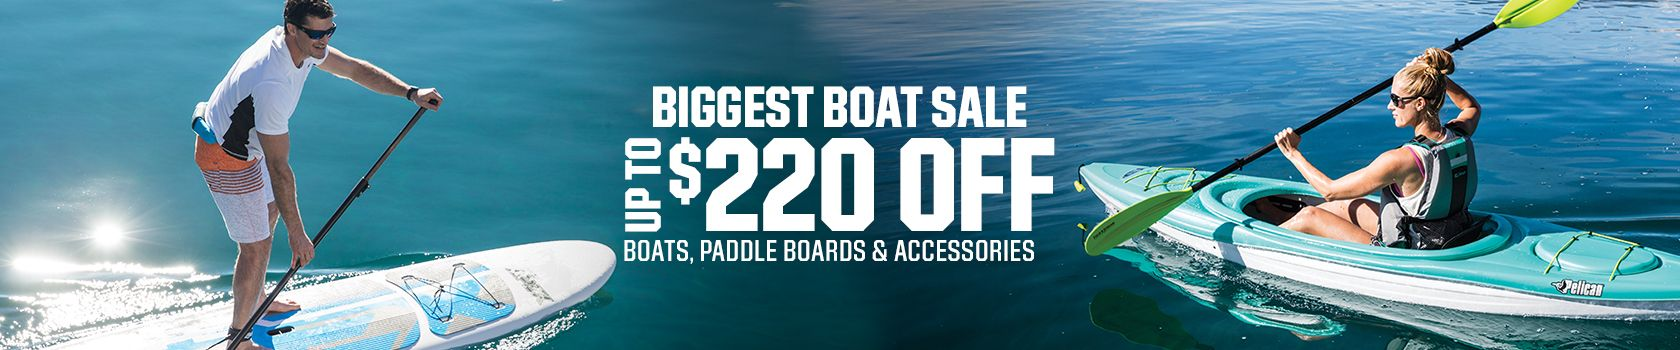 Shop The Biggest Boat Sale - Up To $200 Off - Boats, Paddle Boards and Accessories